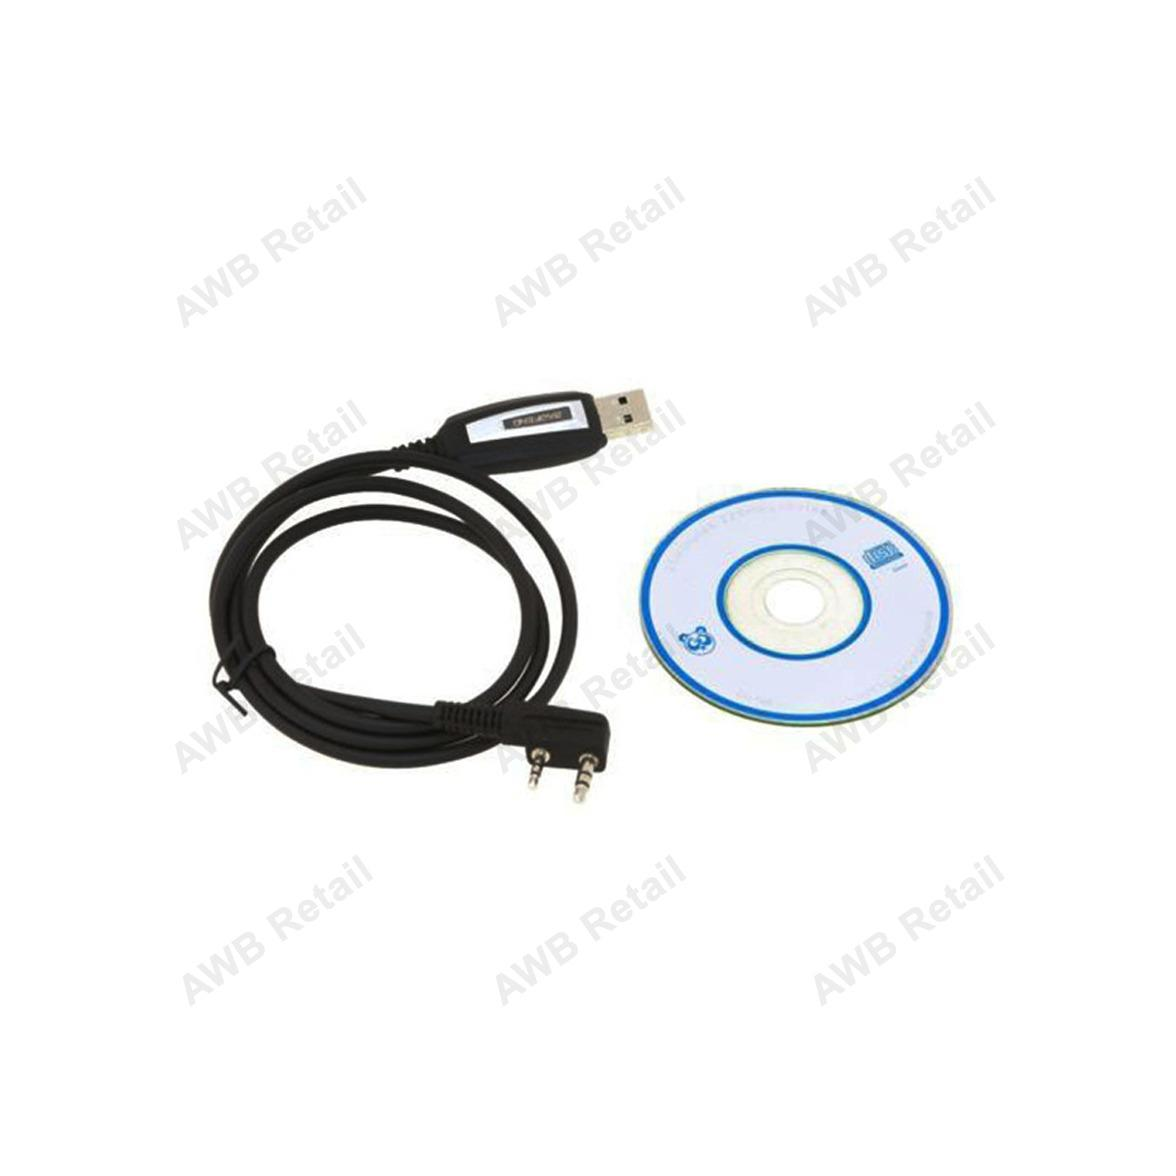 Original USB Programming Cable Program Software CD for Baofeng  UV-5R/UV-5RE, BF-888S Radios, Baofeng UV-82, WLN KD-C1, WH-27